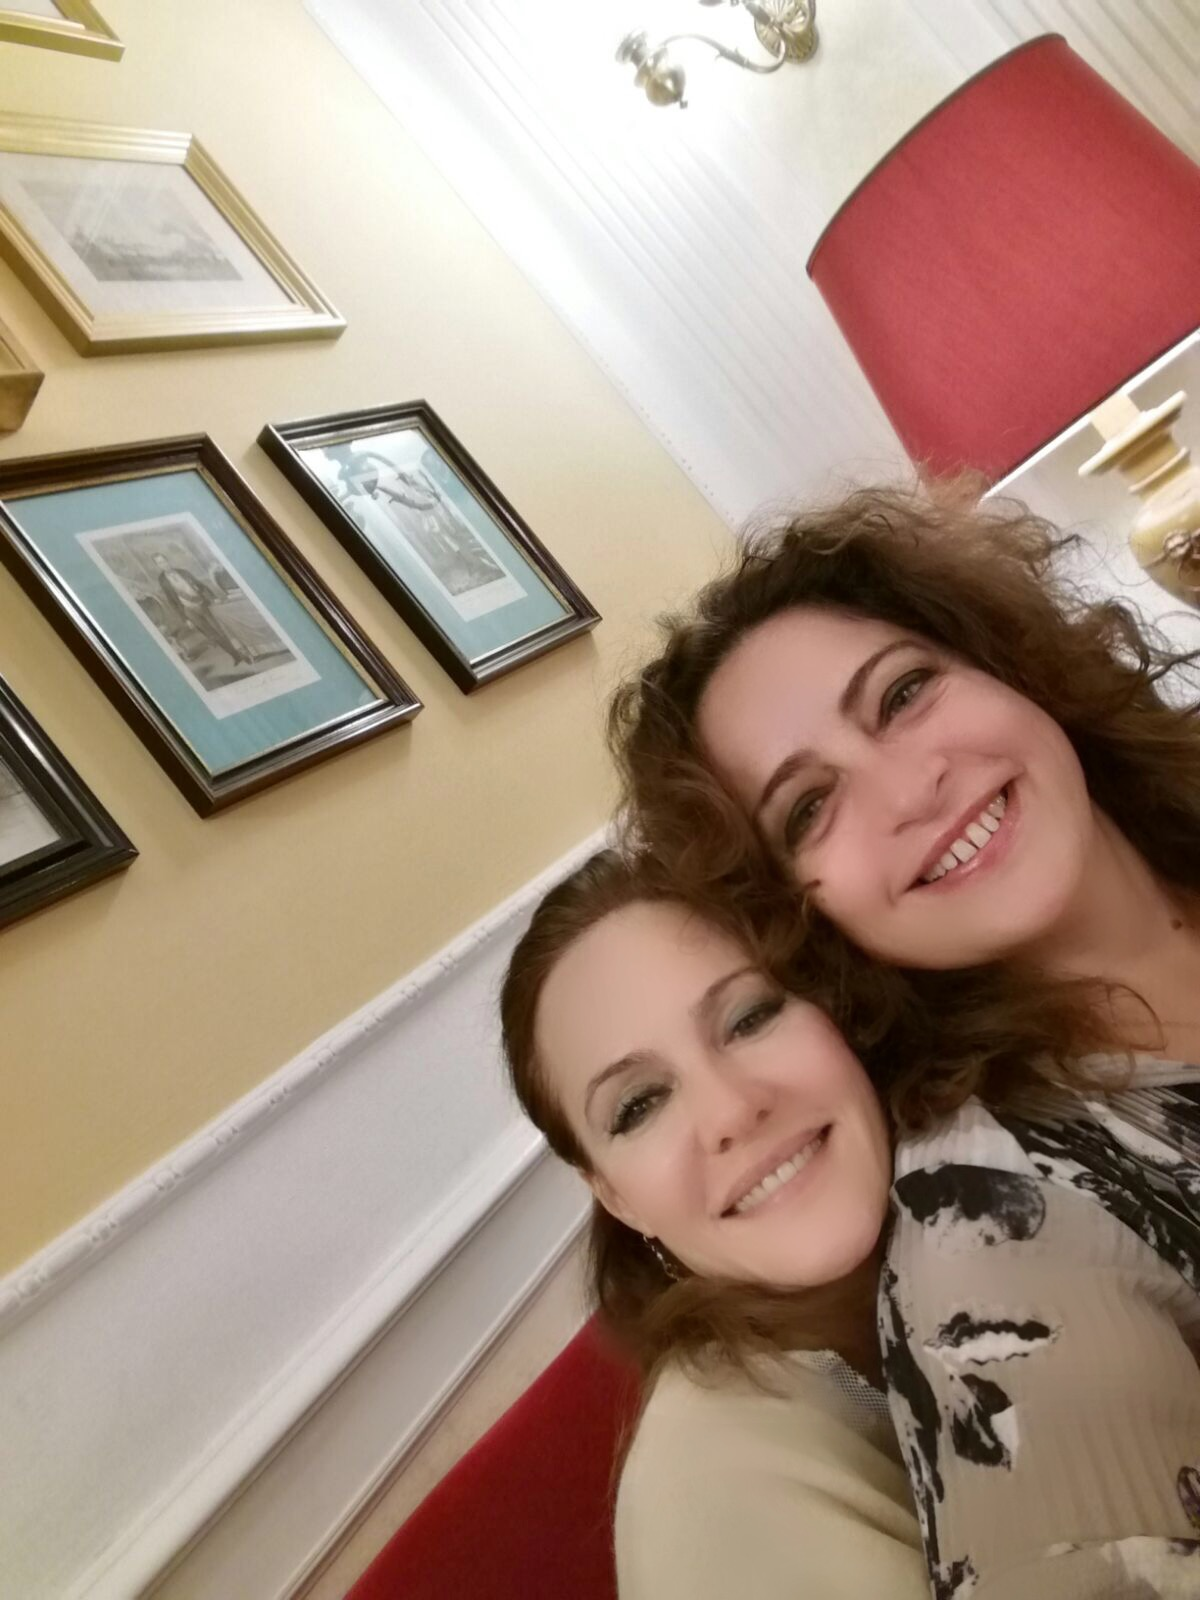 Paola Tonussi and Maria Grazia Filippi in Rome, November 2016